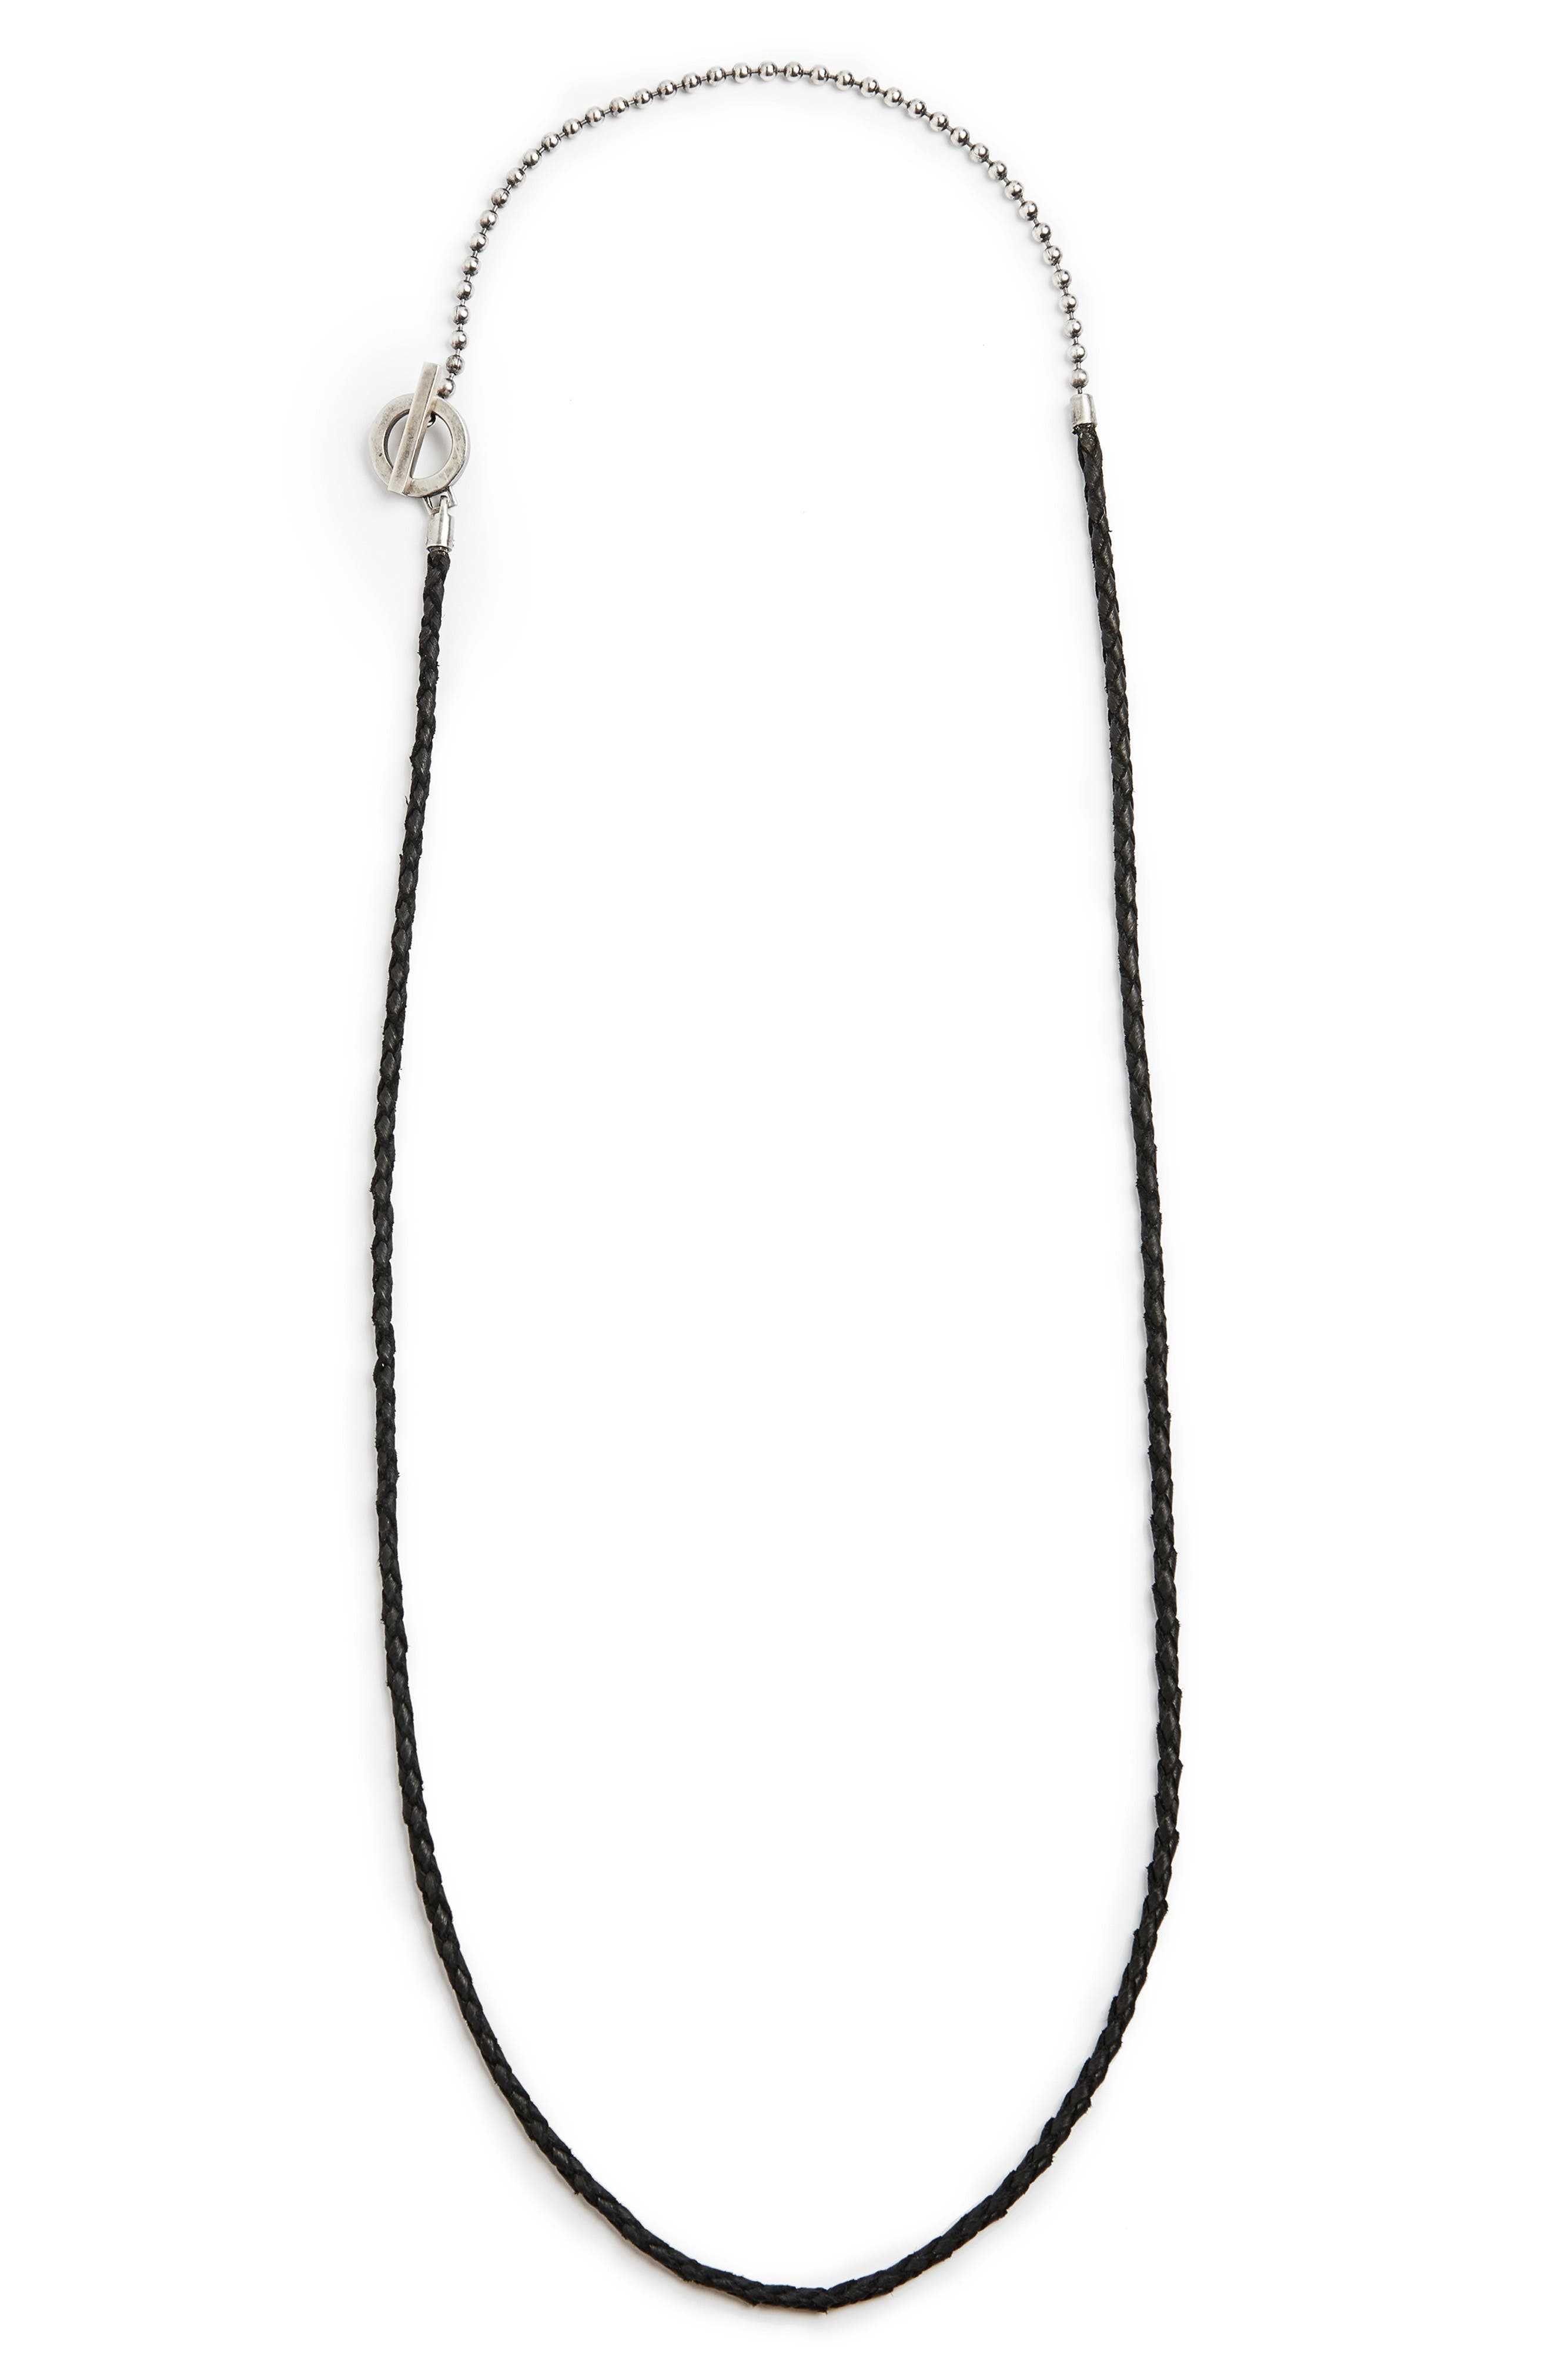 Leather & Sterling Silver Ball Chain Necklace,                             Main thumbnail 1, color,                             SILVER/ BLACK